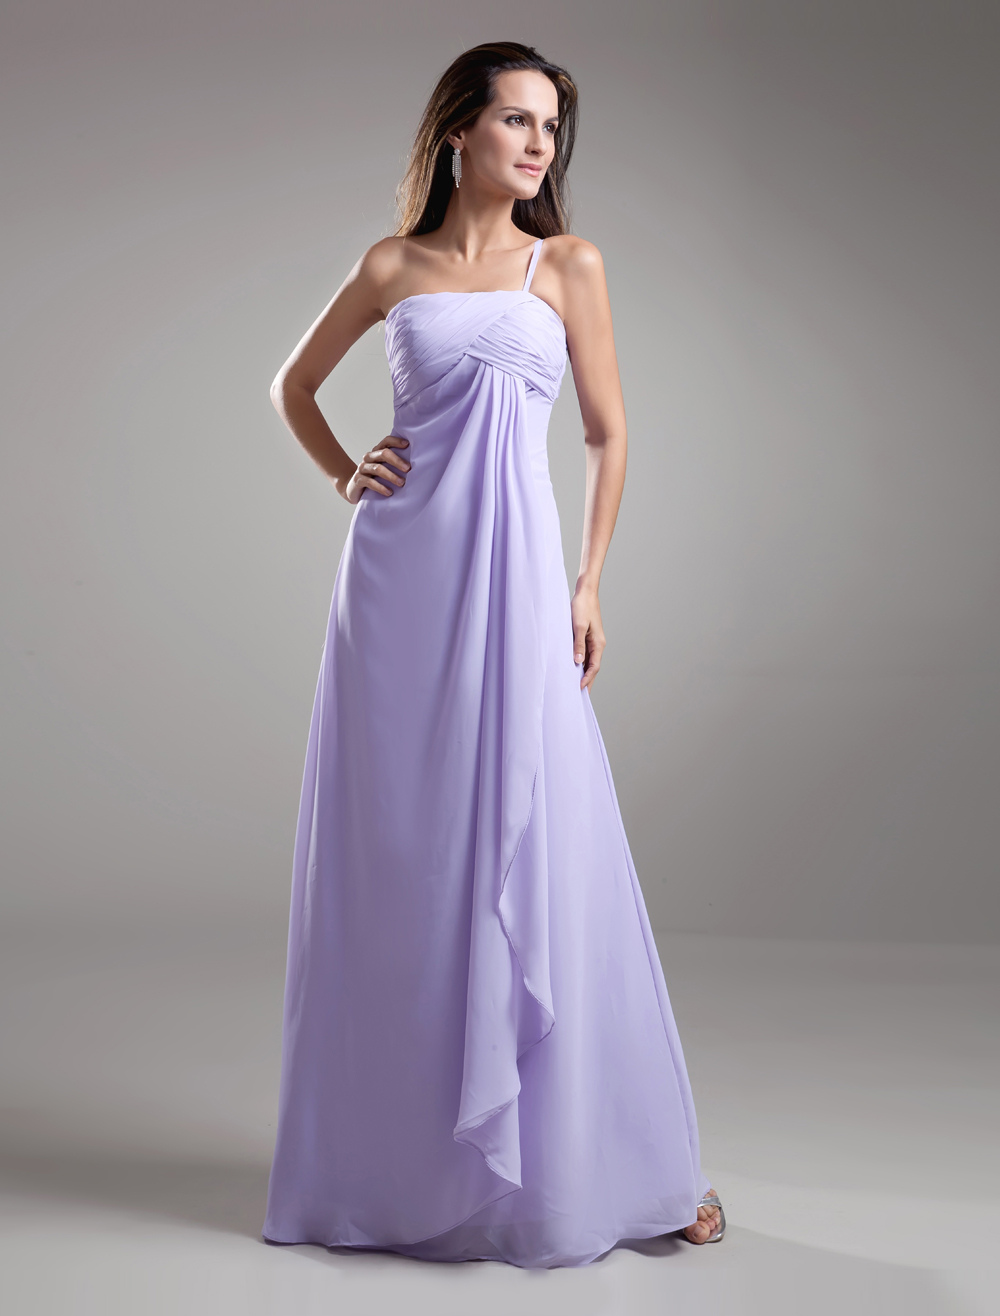 Elegant A-line Lavender Chiffon Cascading Ruffle Strapless Floor-Length Wedding Bridesmaid Dress